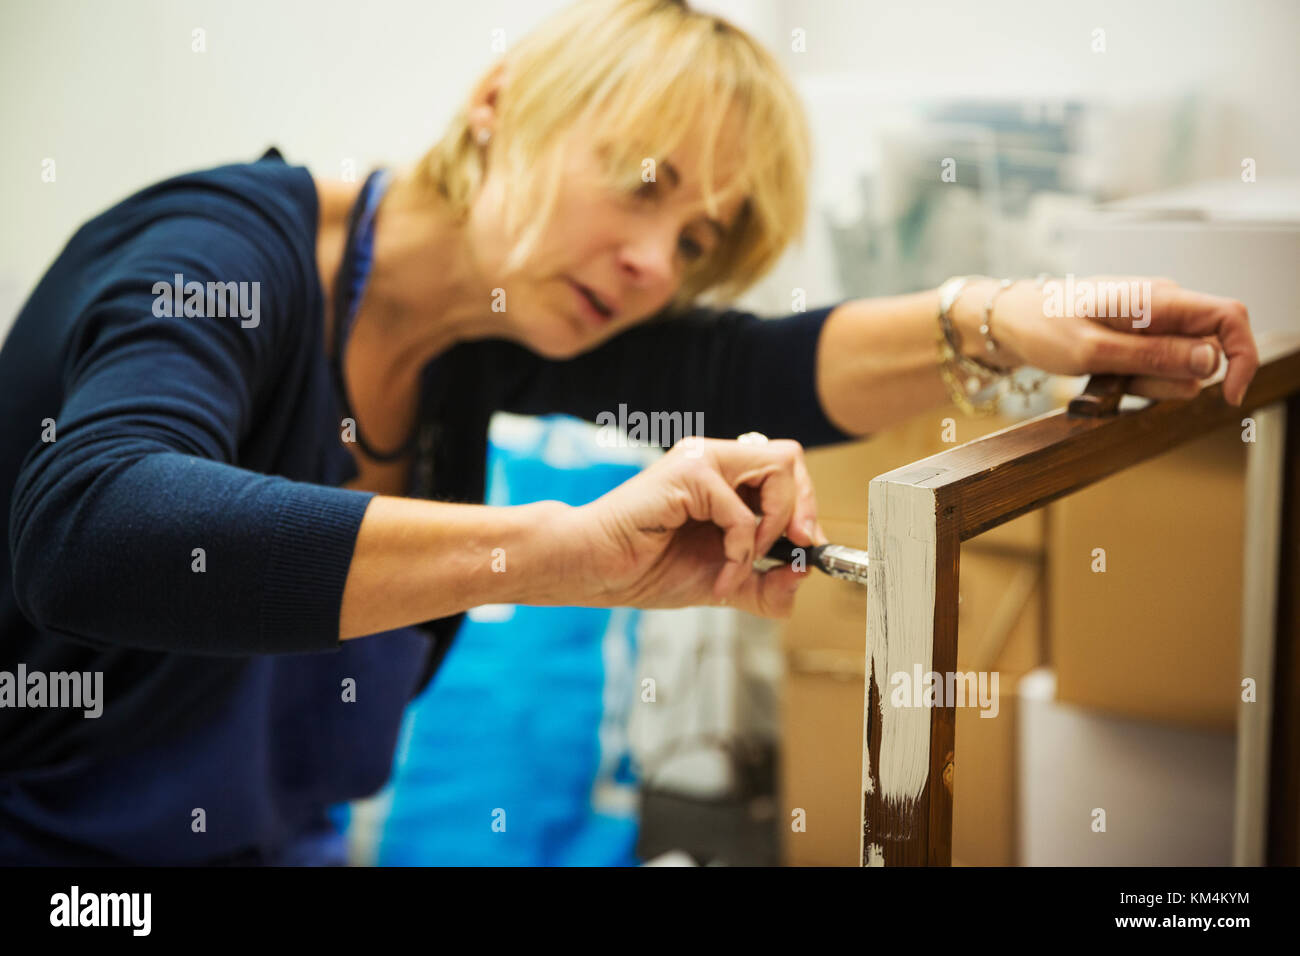 A woman working on a wooden frame with a paintbrush, upcycling wooden objects. - Stock Image